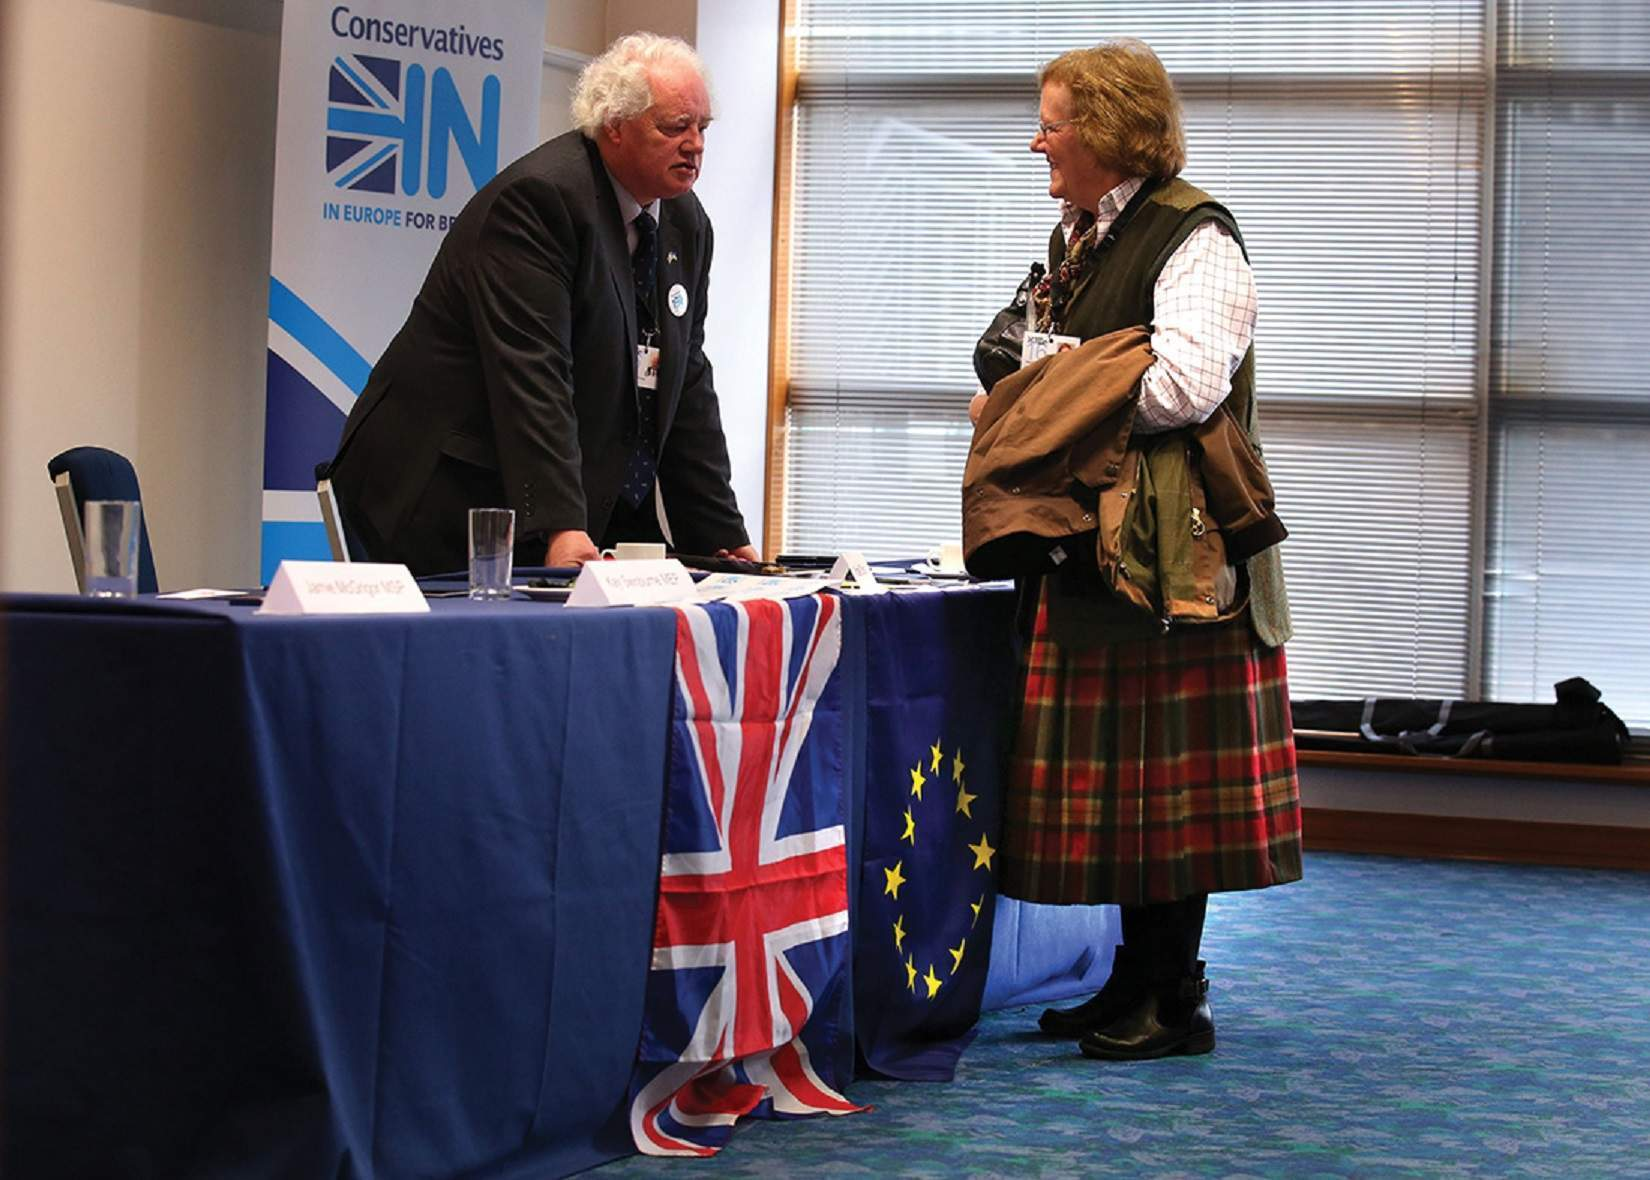 Could this be the year the Tories make headway in Scotland?